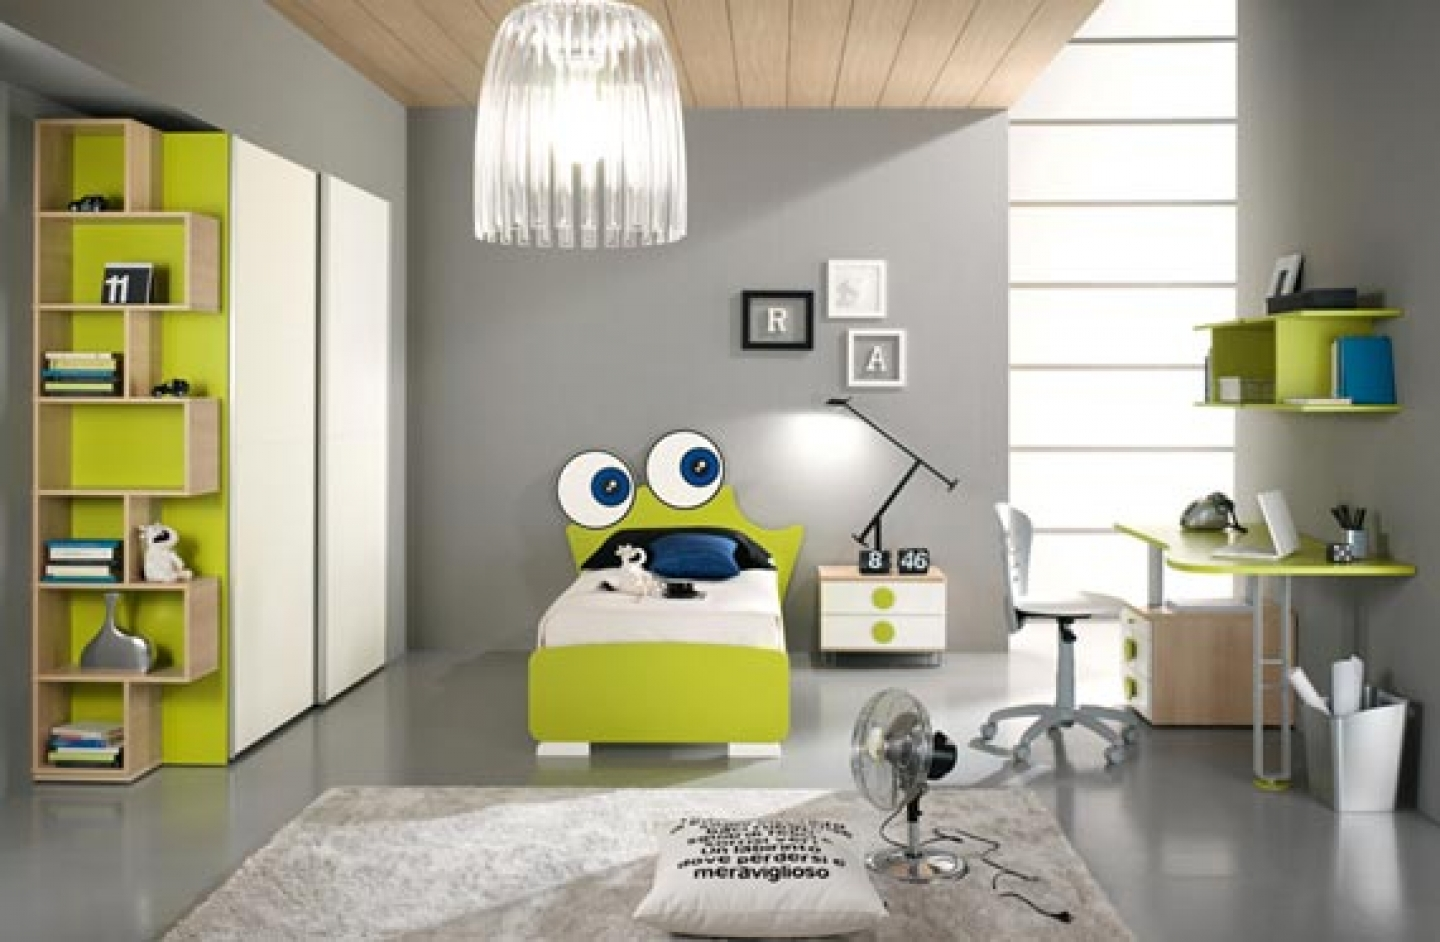 Choose Unique Green Bed and White Nightstand for Modern Kids Room Decor with Stylish Study Desk